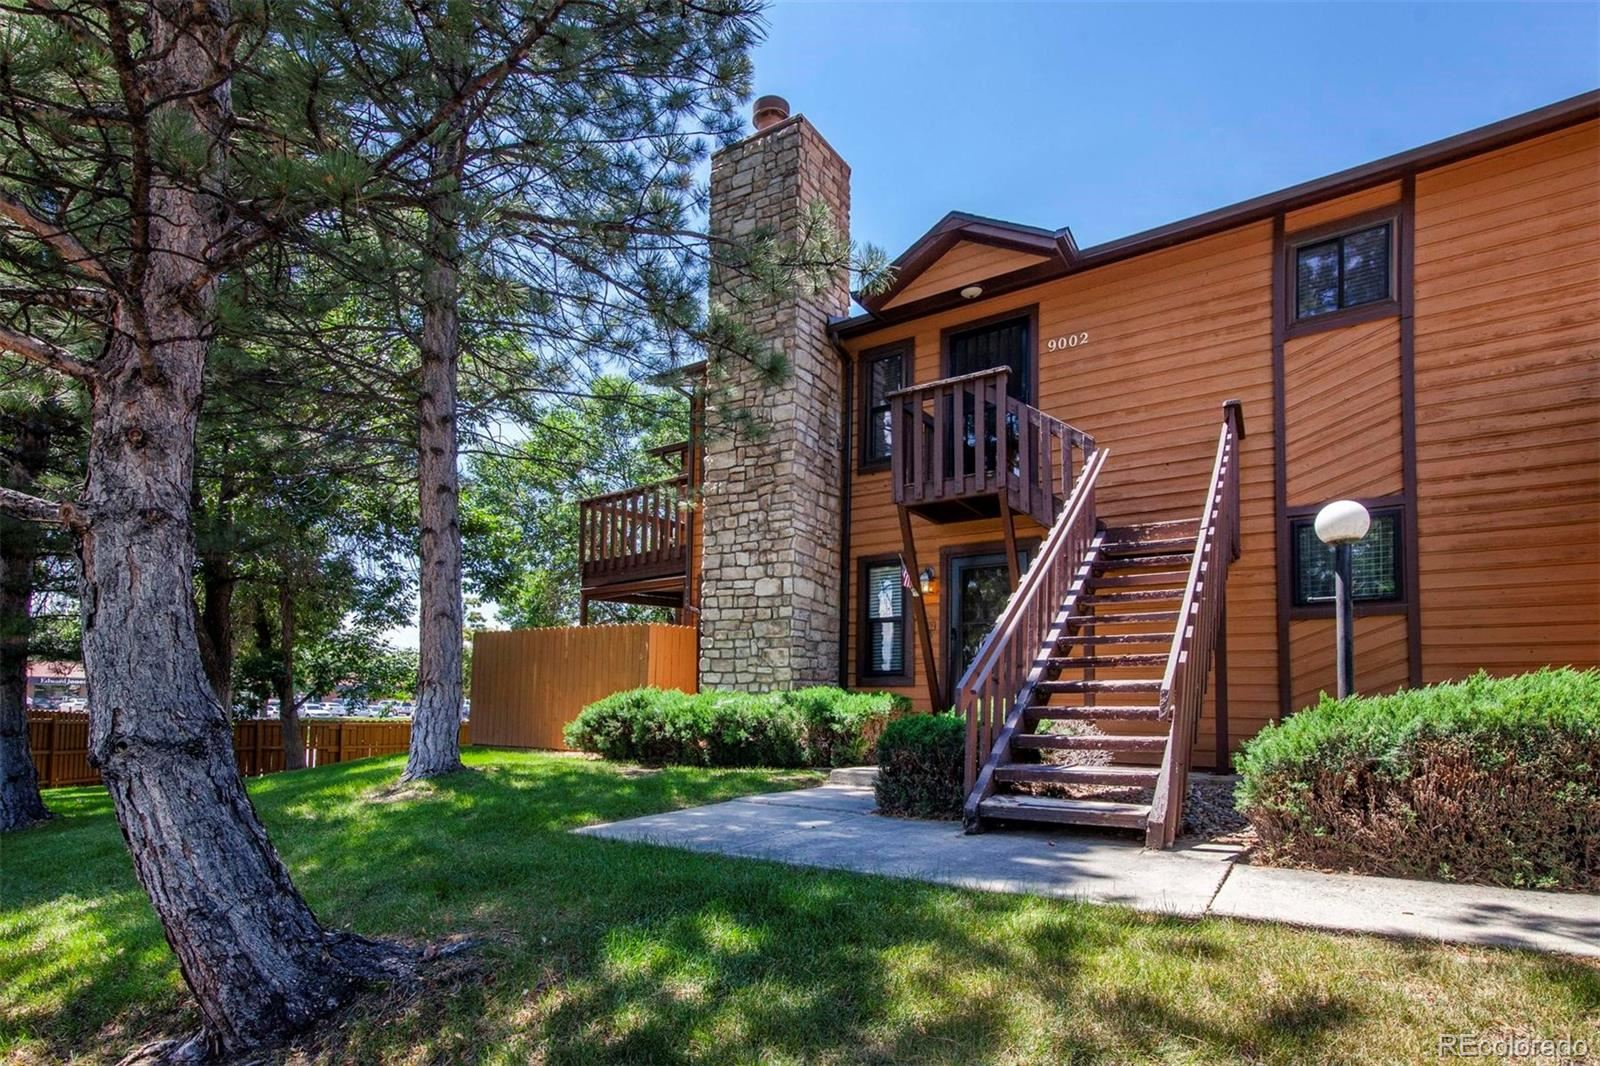 9002 W 88th Circle, Westminster, CO 80021 - #: 9105236